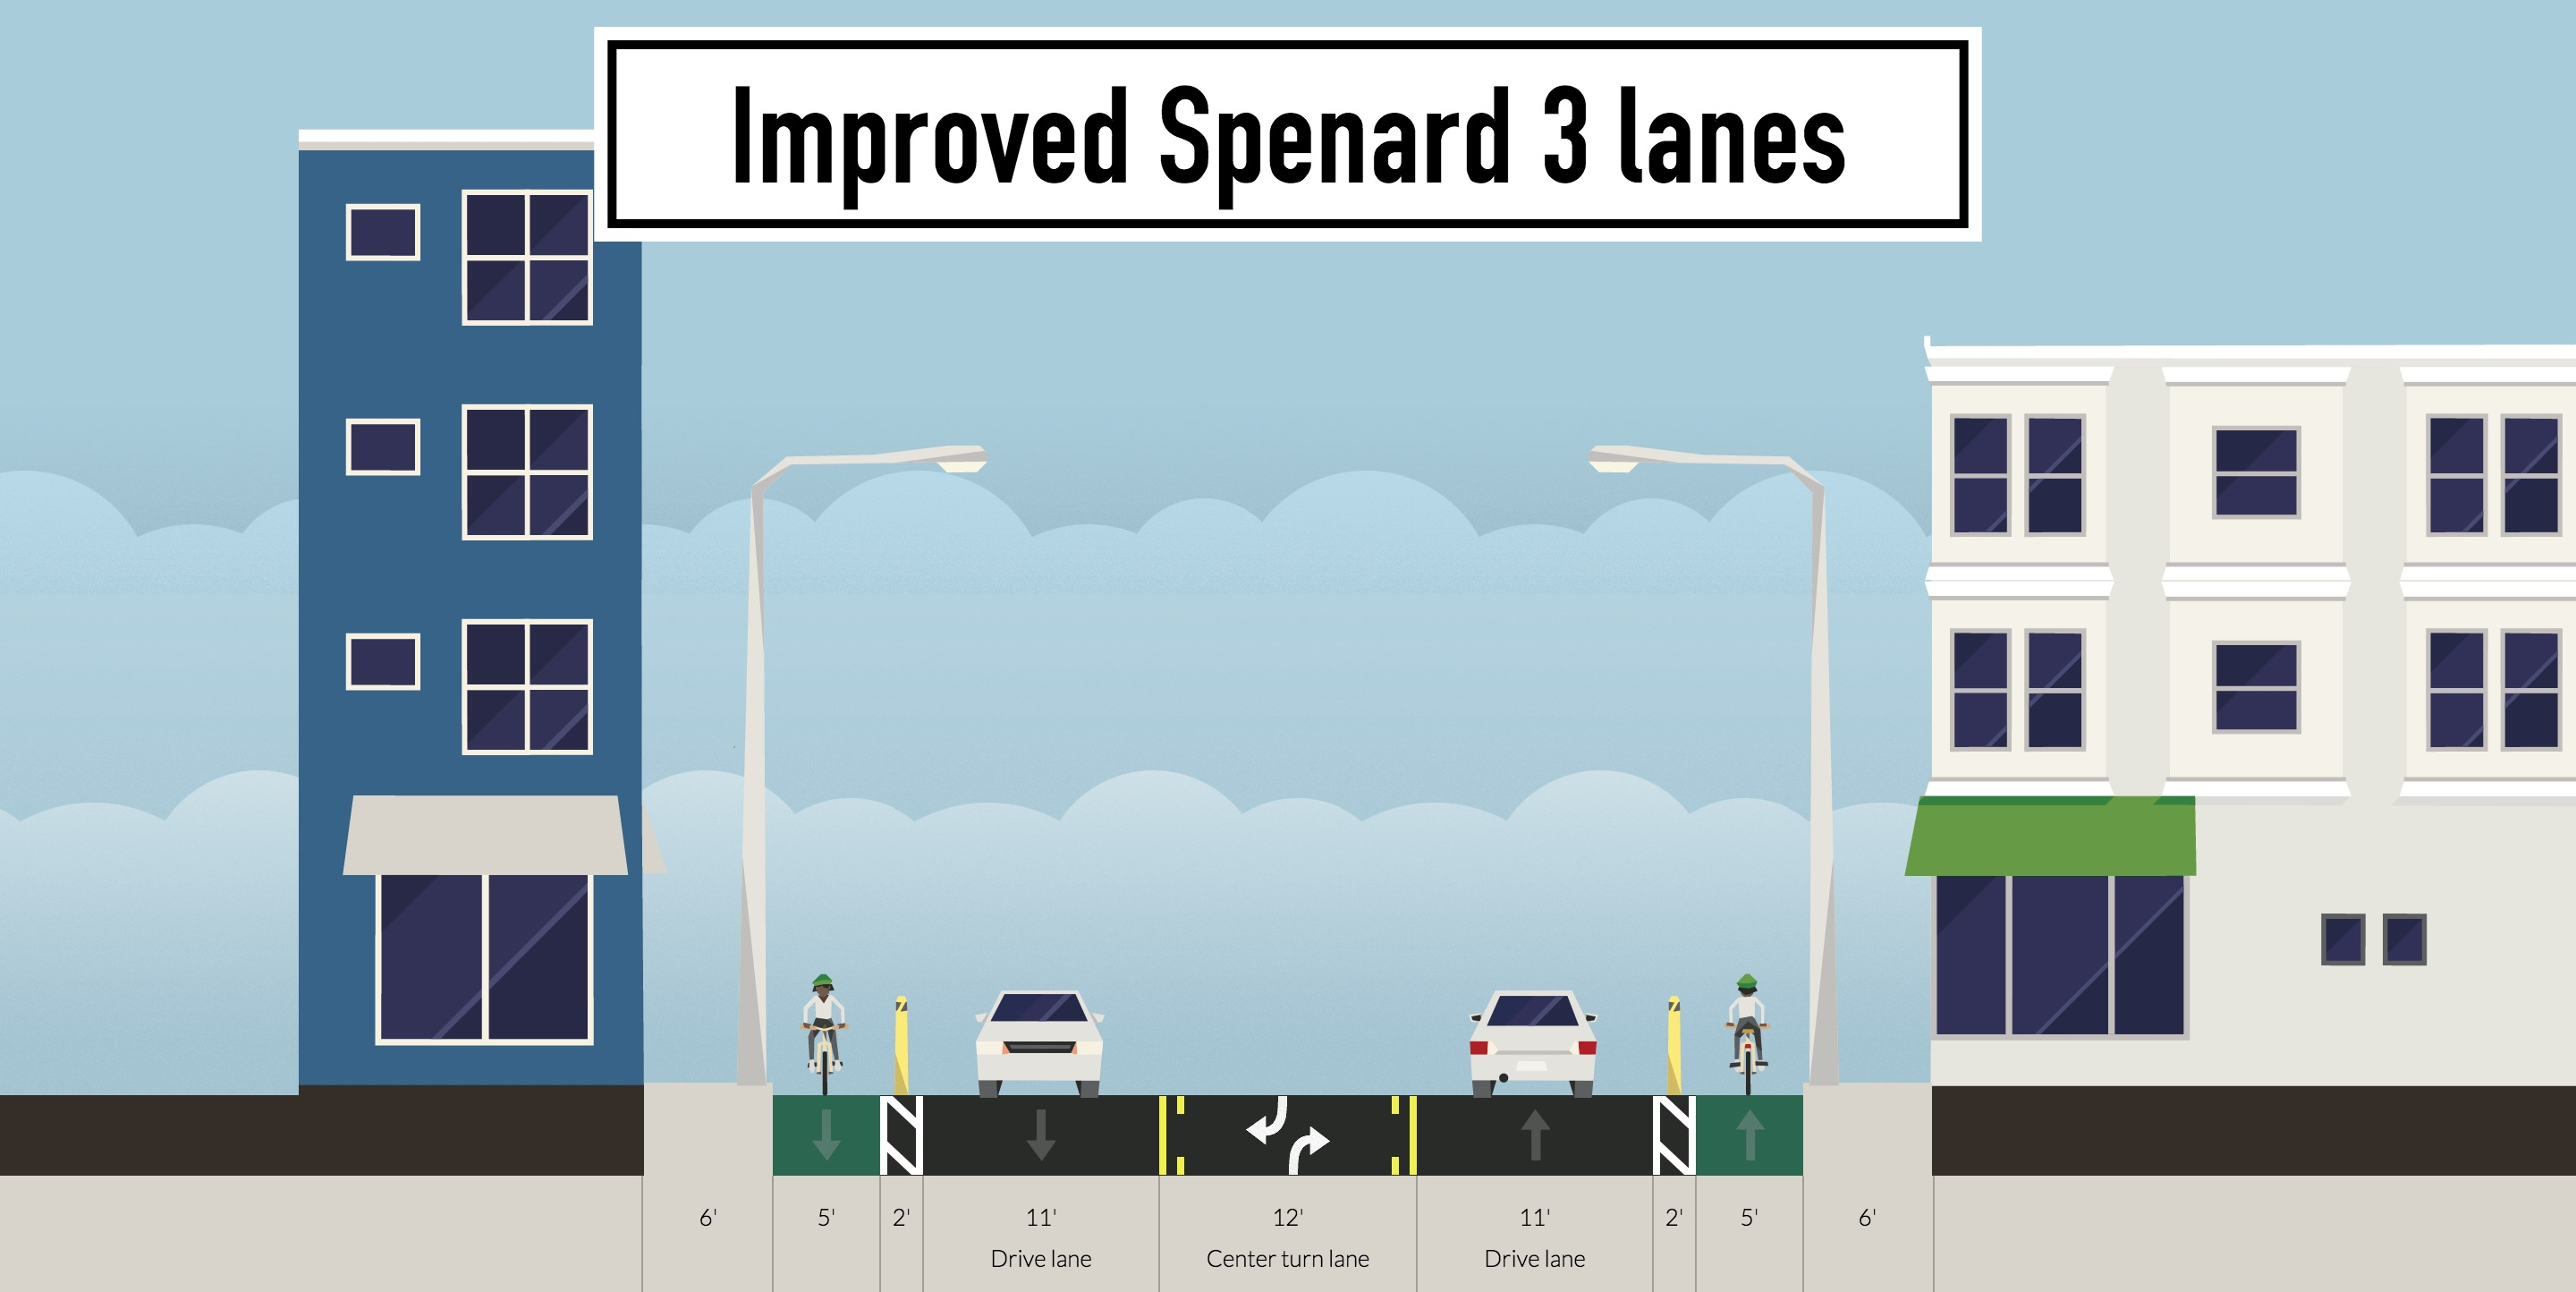 improved-spenard-3-lanes.jpg